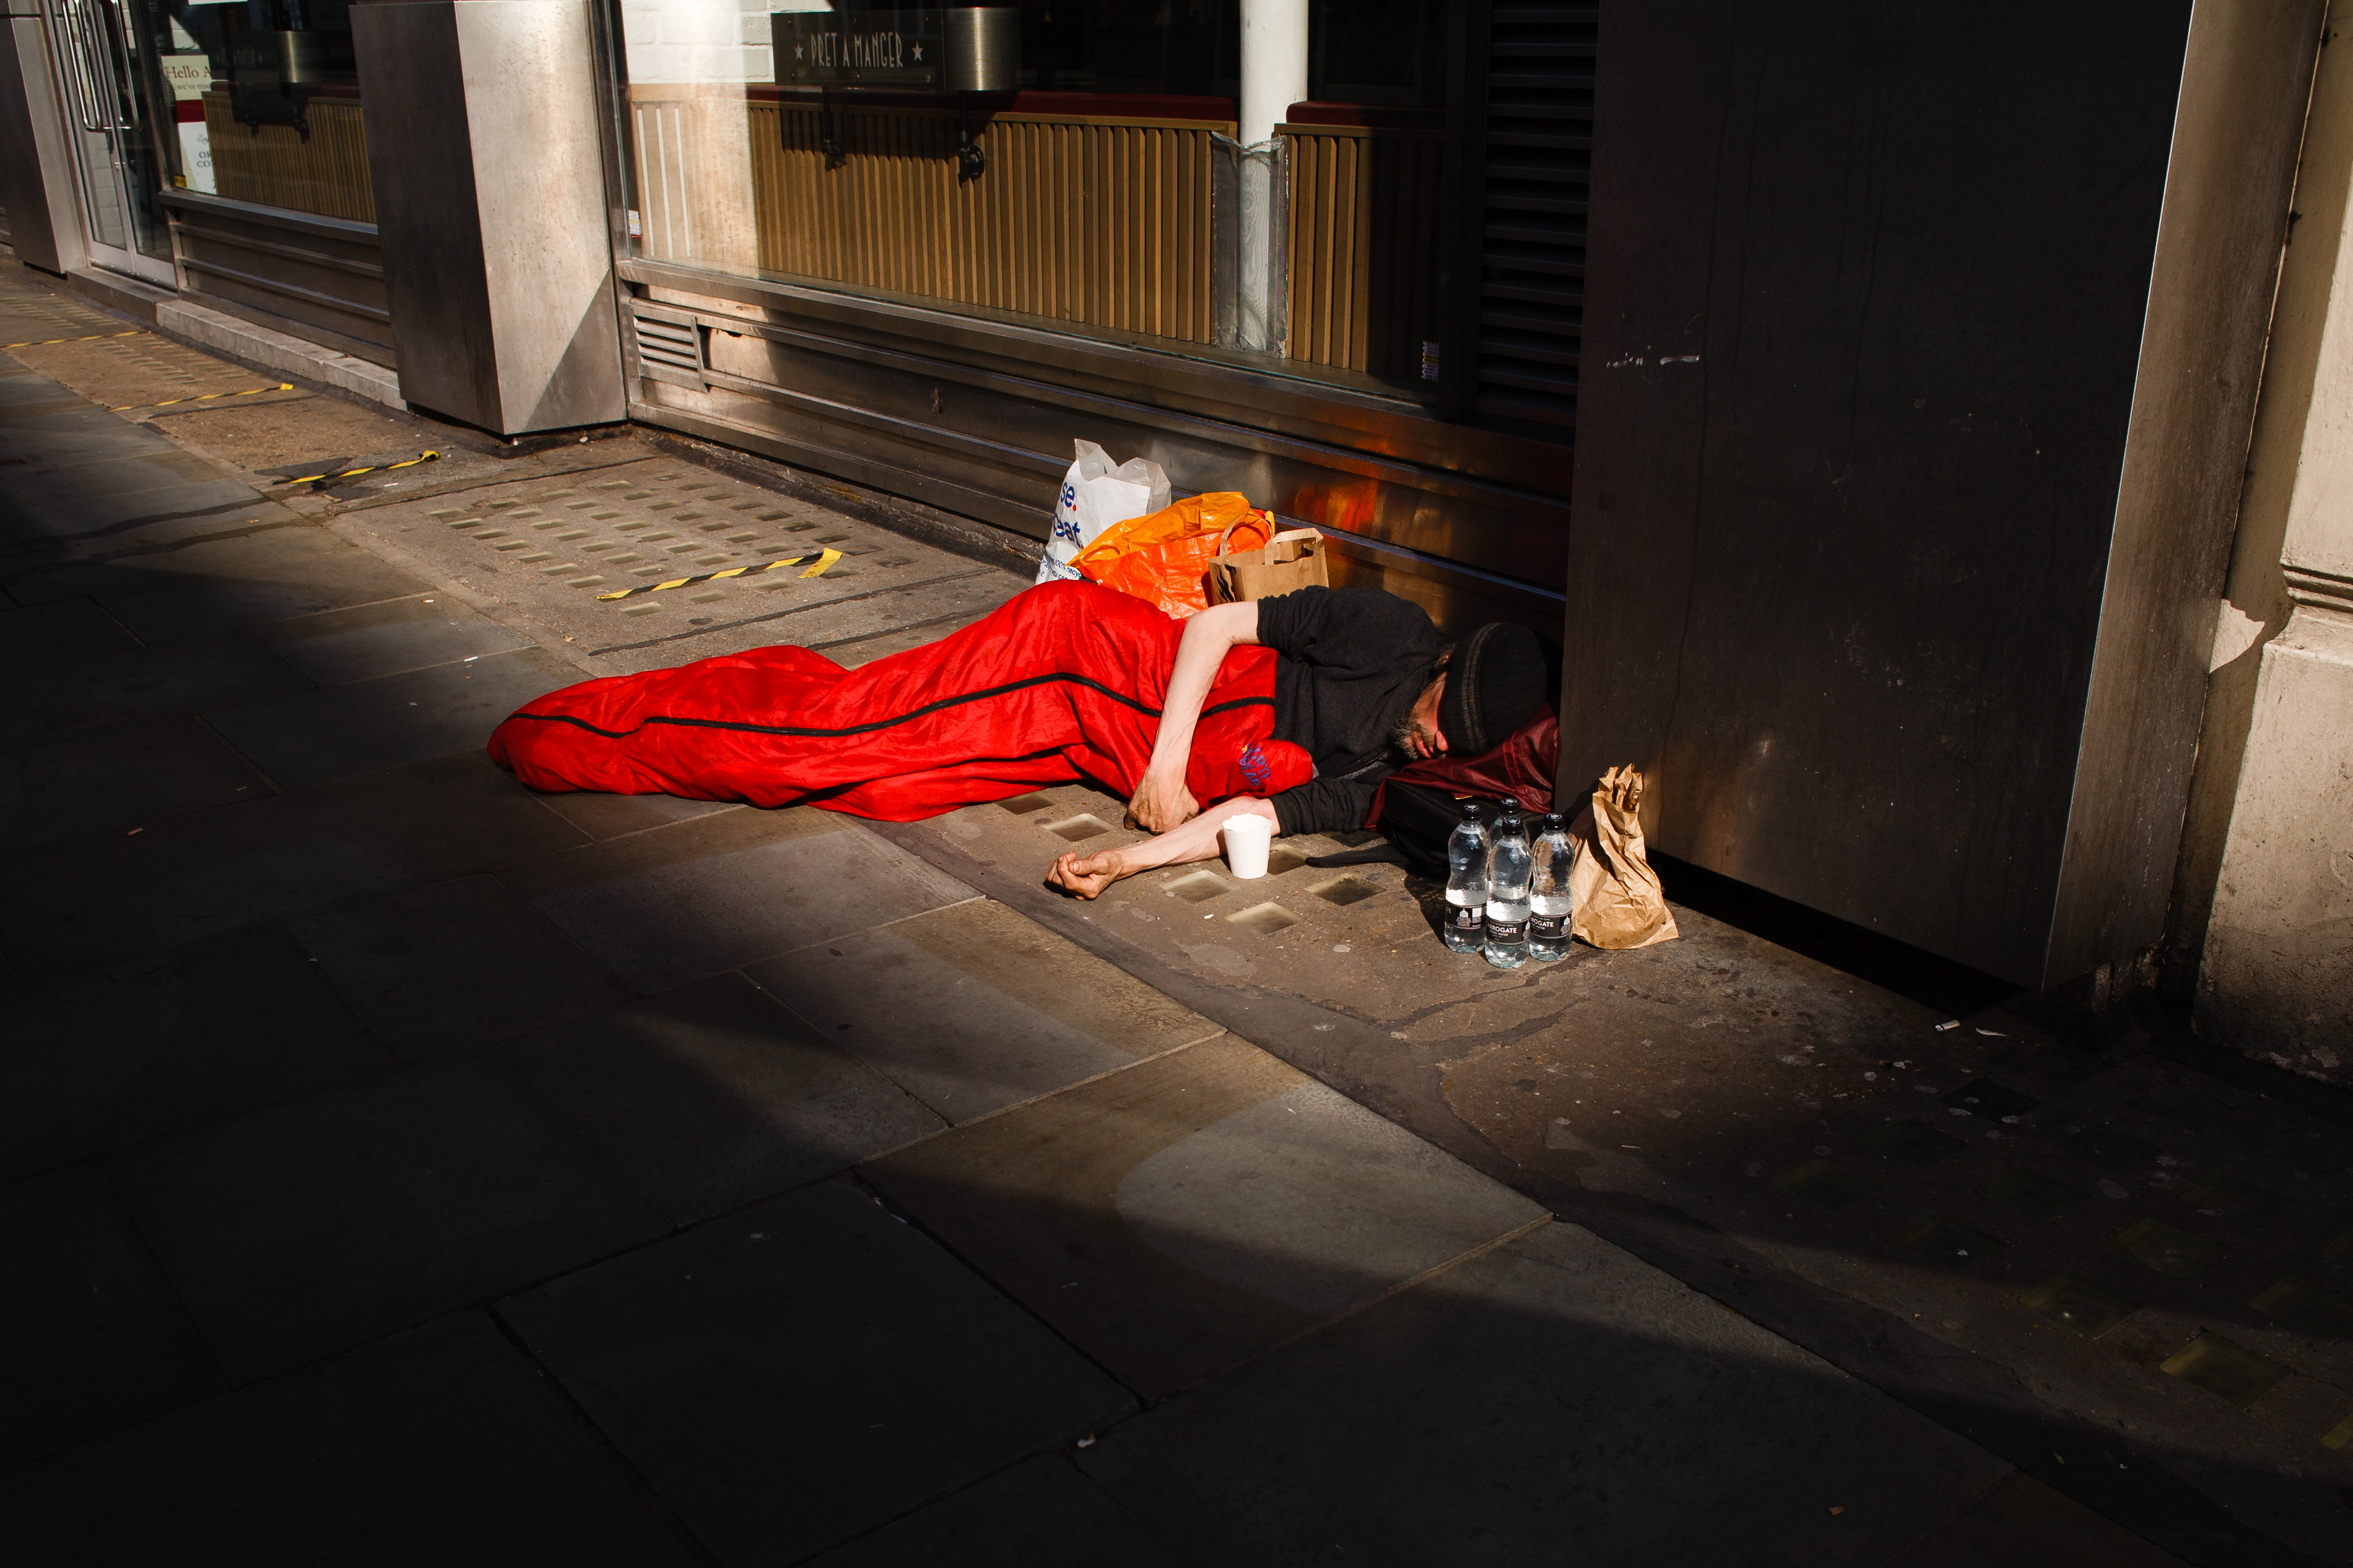 A homeless man sleeps on Cranbourn Street in London, England, on June 23, 2020. British Prime Minister Boris Johnson announced today that the next stage of lockdown easing in England would proceed on schedule, with pubs, restaurants, hotels, hairdressers, theatres, cinemas, museums, galleries, libraries, theme parks and zoos allowed to reopen from July 4. The two-metre social distancing rule is also to be halved from the same date, with people encouraged to take additional mitigation actions, such as wearing face coverings, when close together. The change, to what is being dubbed 'one-metre plus', is seen as key to the survival of the hospitality sector. (Photo by David Cliff/NurPhoto via Getty Images)